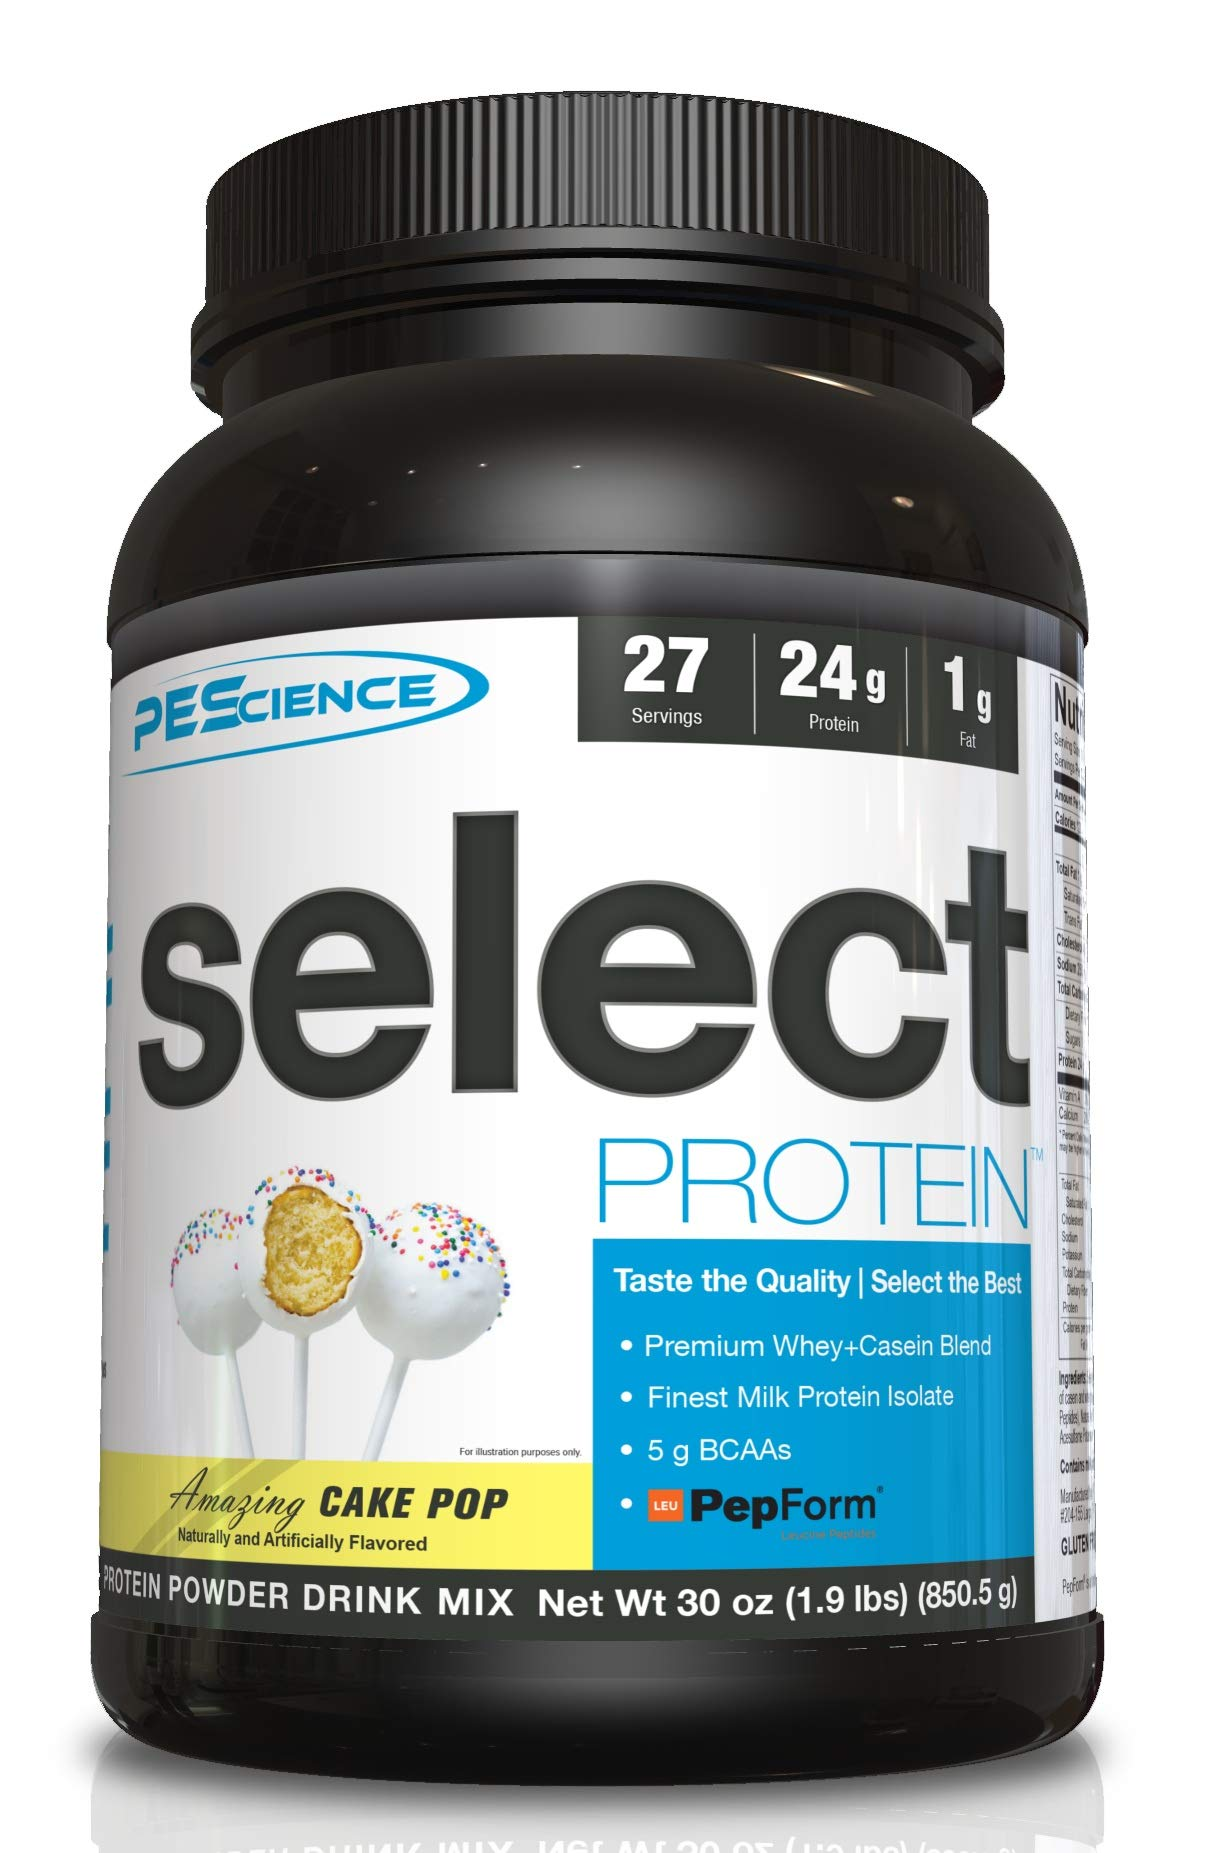 PEScience Select Protein Powder, Cake Pop, 27 Serving, Whey and Casein Blend by PEScience